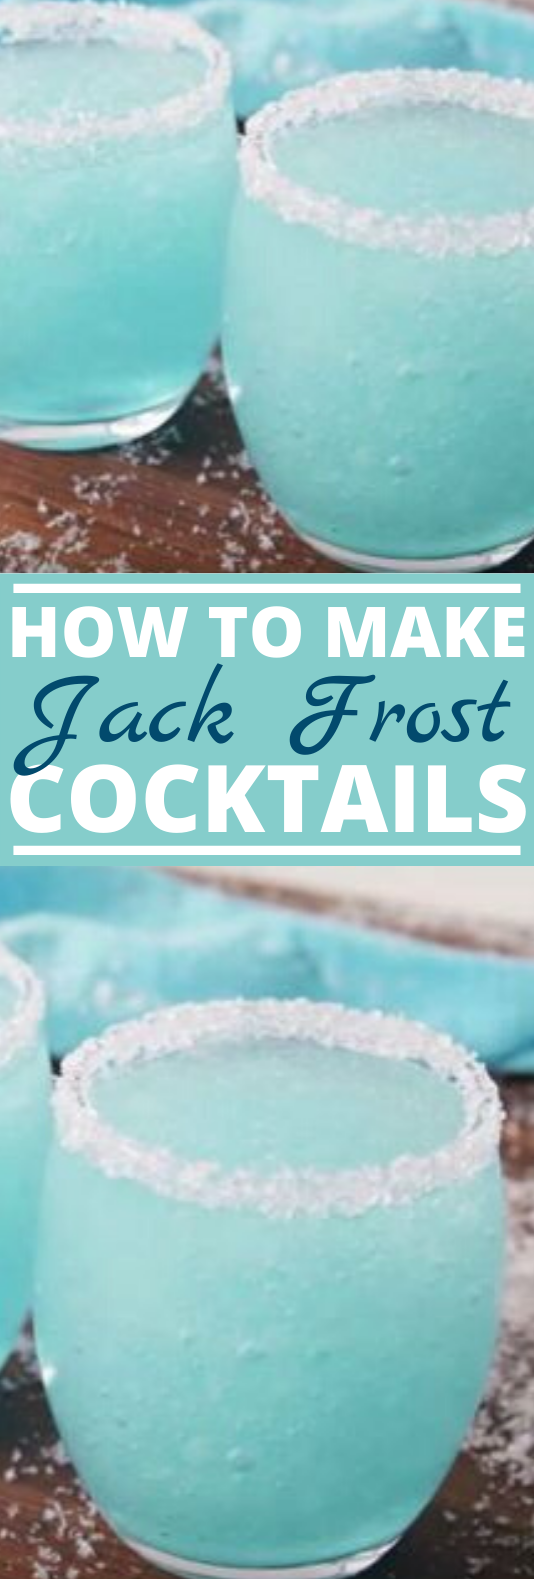 Jack Frosty Cocktails #drinks #cocktail #alcohol #slush #winter